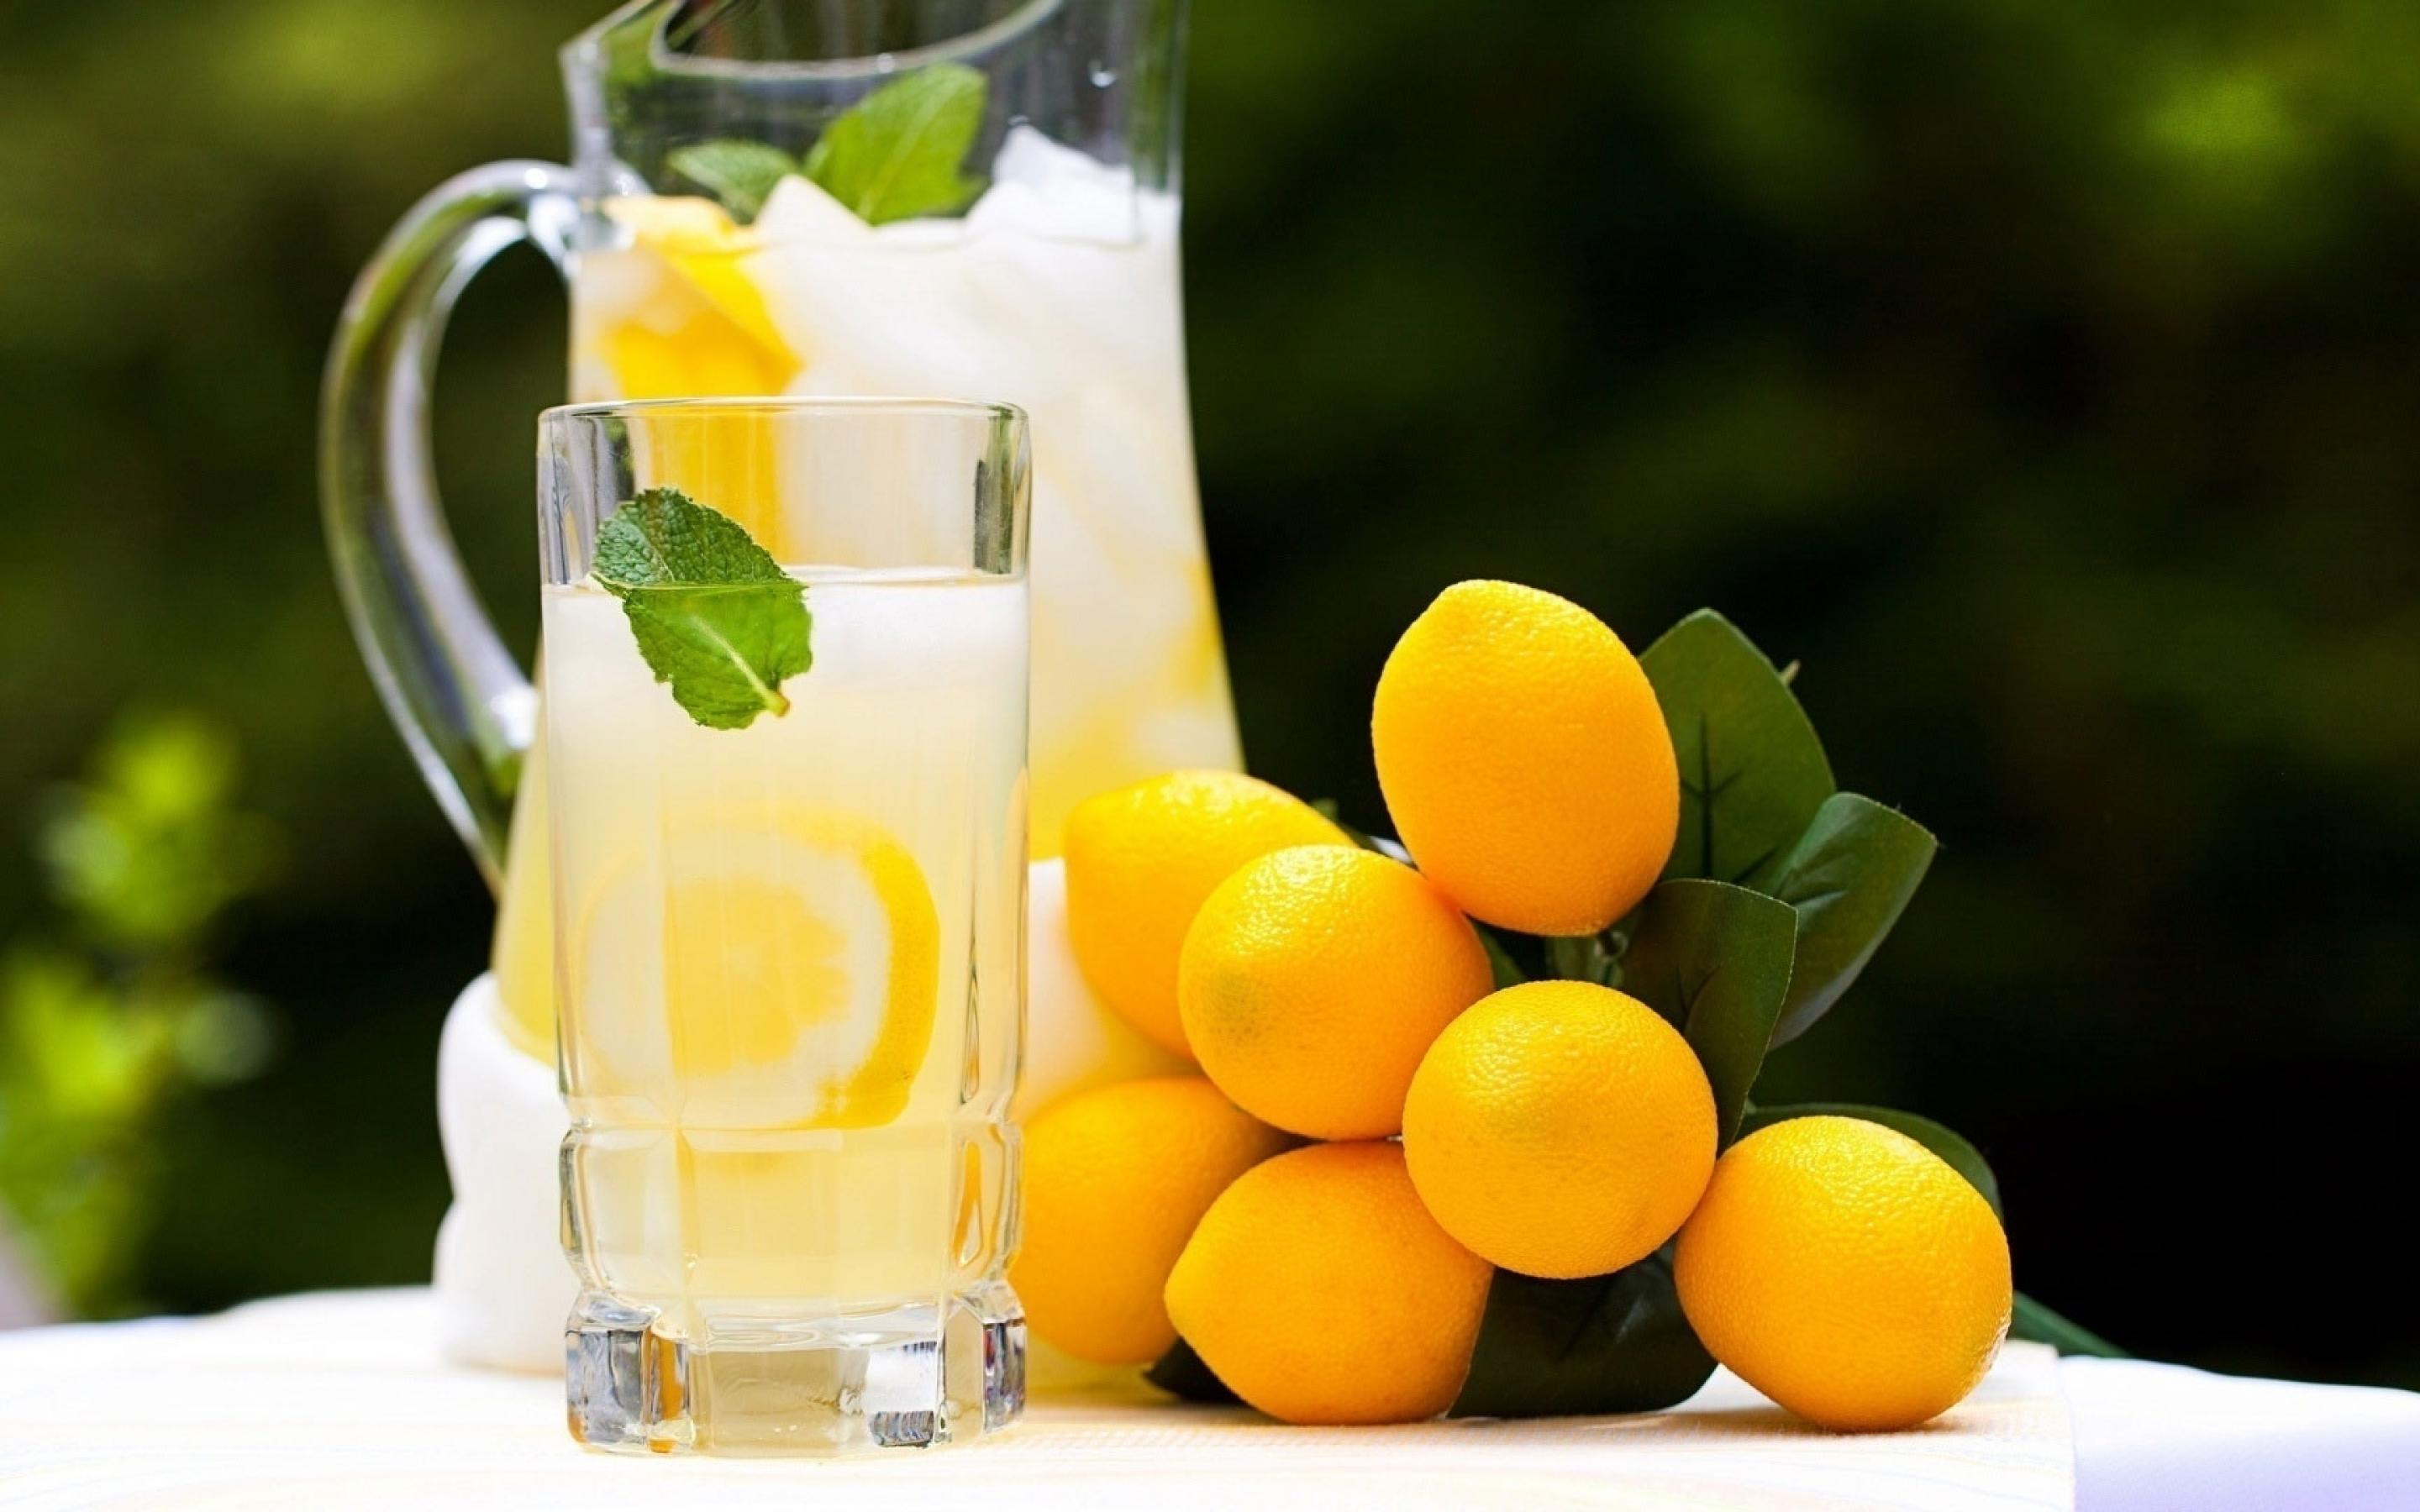 8 Lovely HD Lemonade Drink Wallpapers - HDWallSource.com